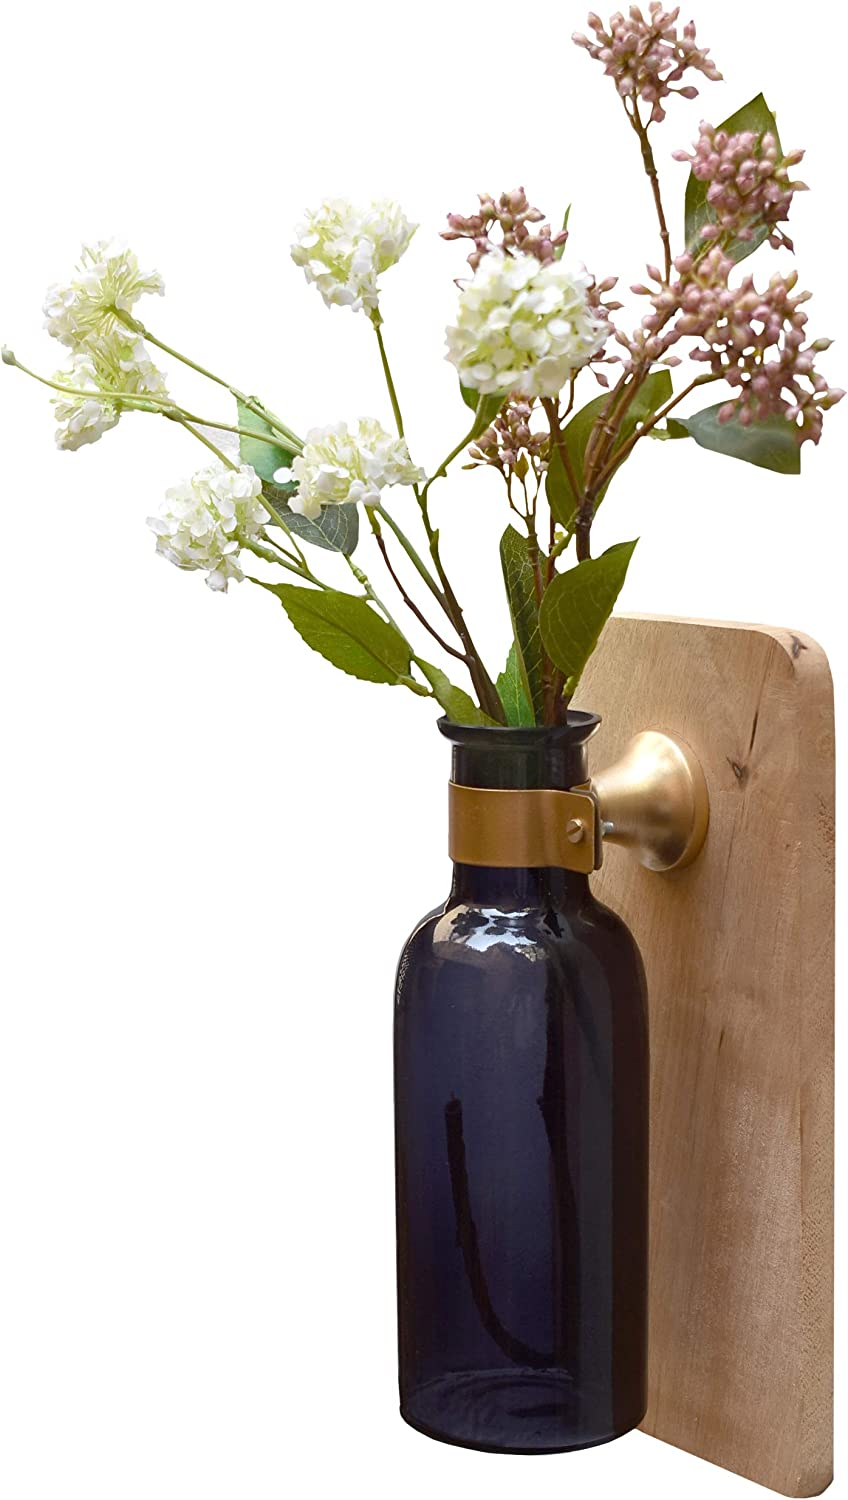 AIKYA Hanging Rustic Flower Vase in Grey with Faux Flowers Arrangement – Floral Farmhouse Sconces Wall Decor is a Modern Decoration for Home or Office – Classy and Elegant